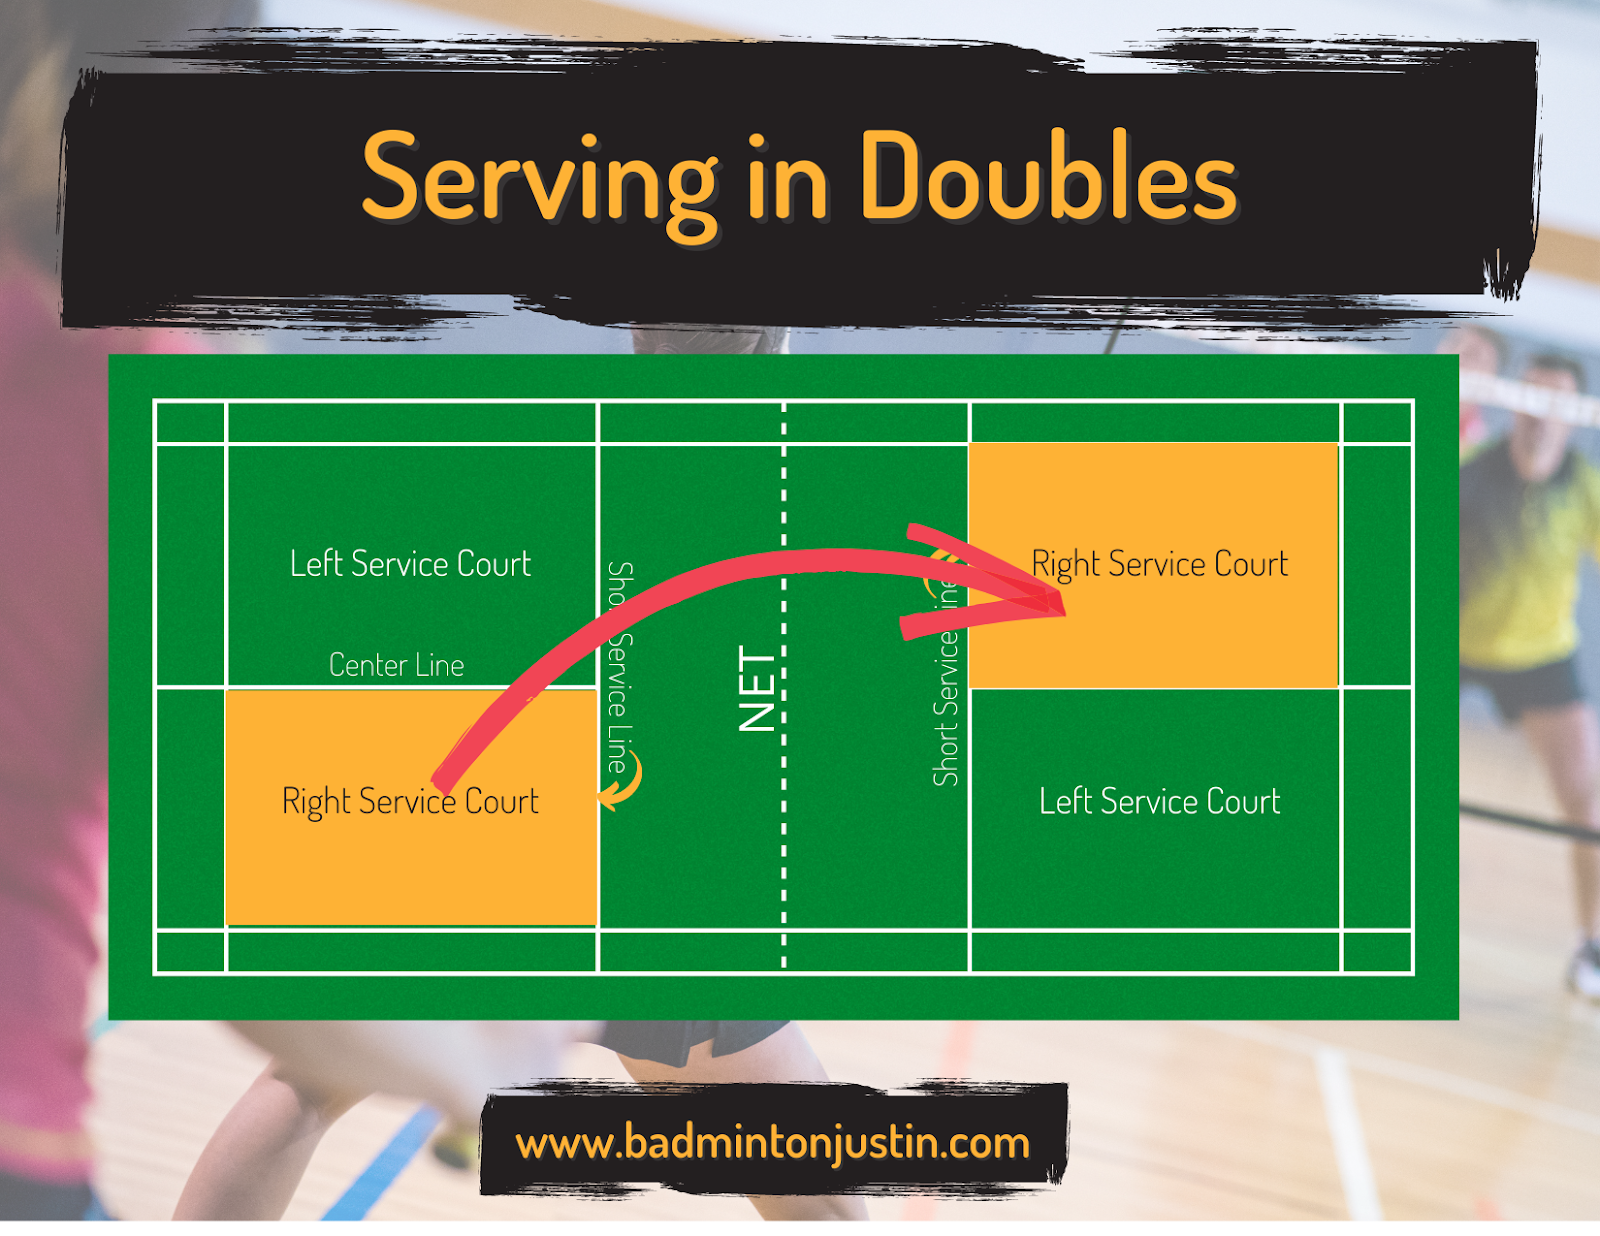 This aerial view of an animated badminton court shows a red arrow following the path that the shuttle would take after being served in a doubles game.